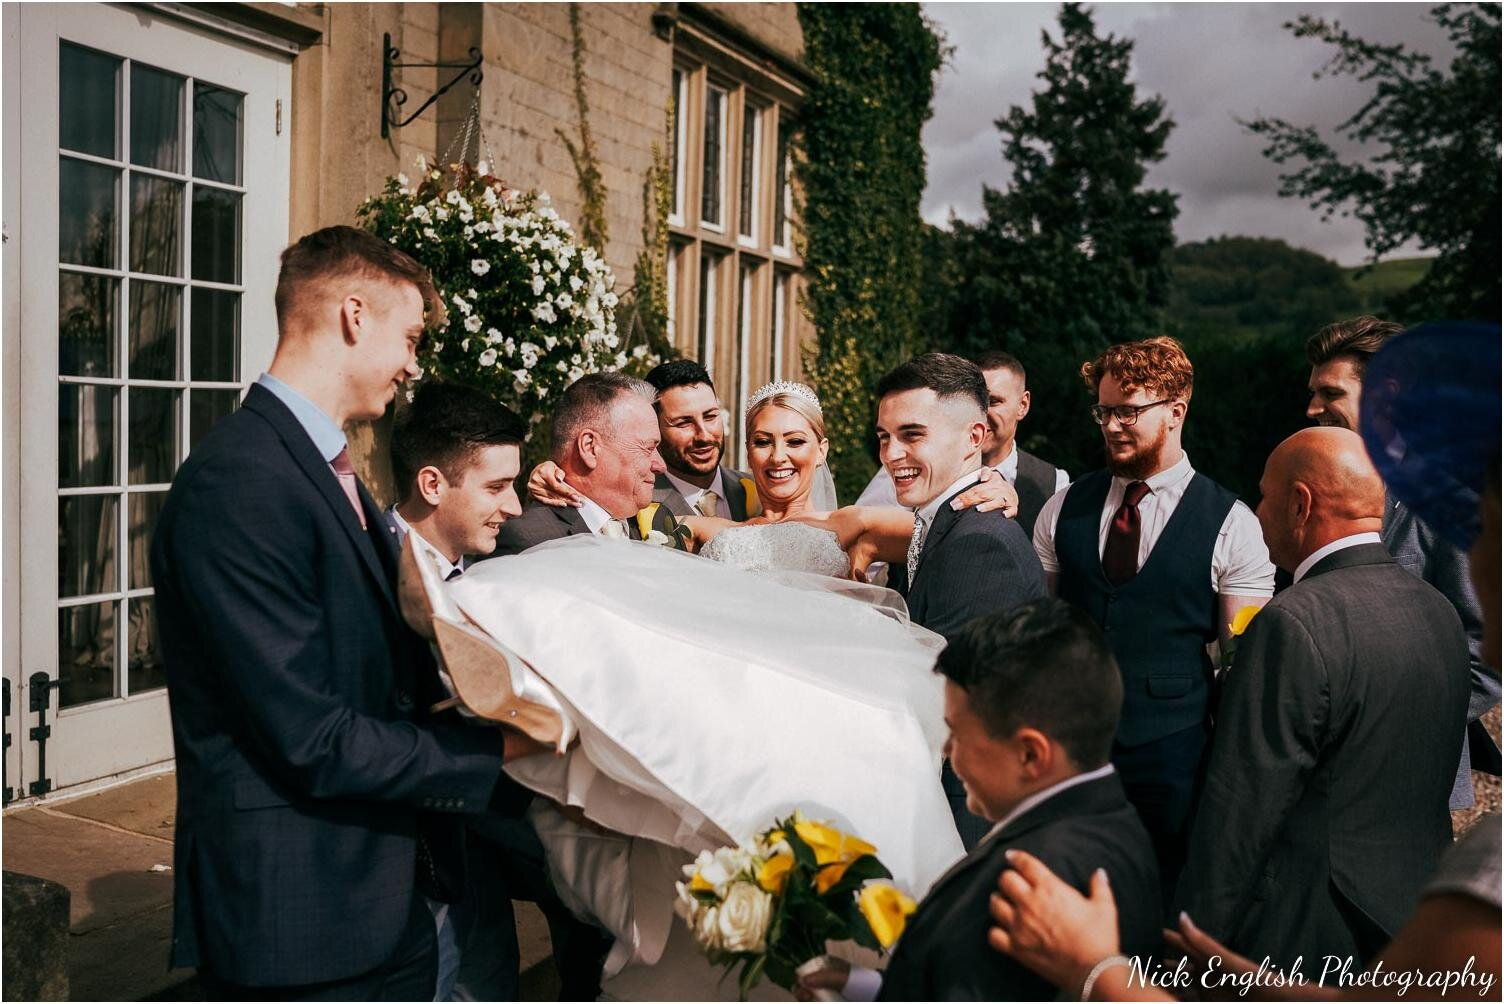 Falcon_Manor_Yorkshire_Wedding_Photographer-68.jpg